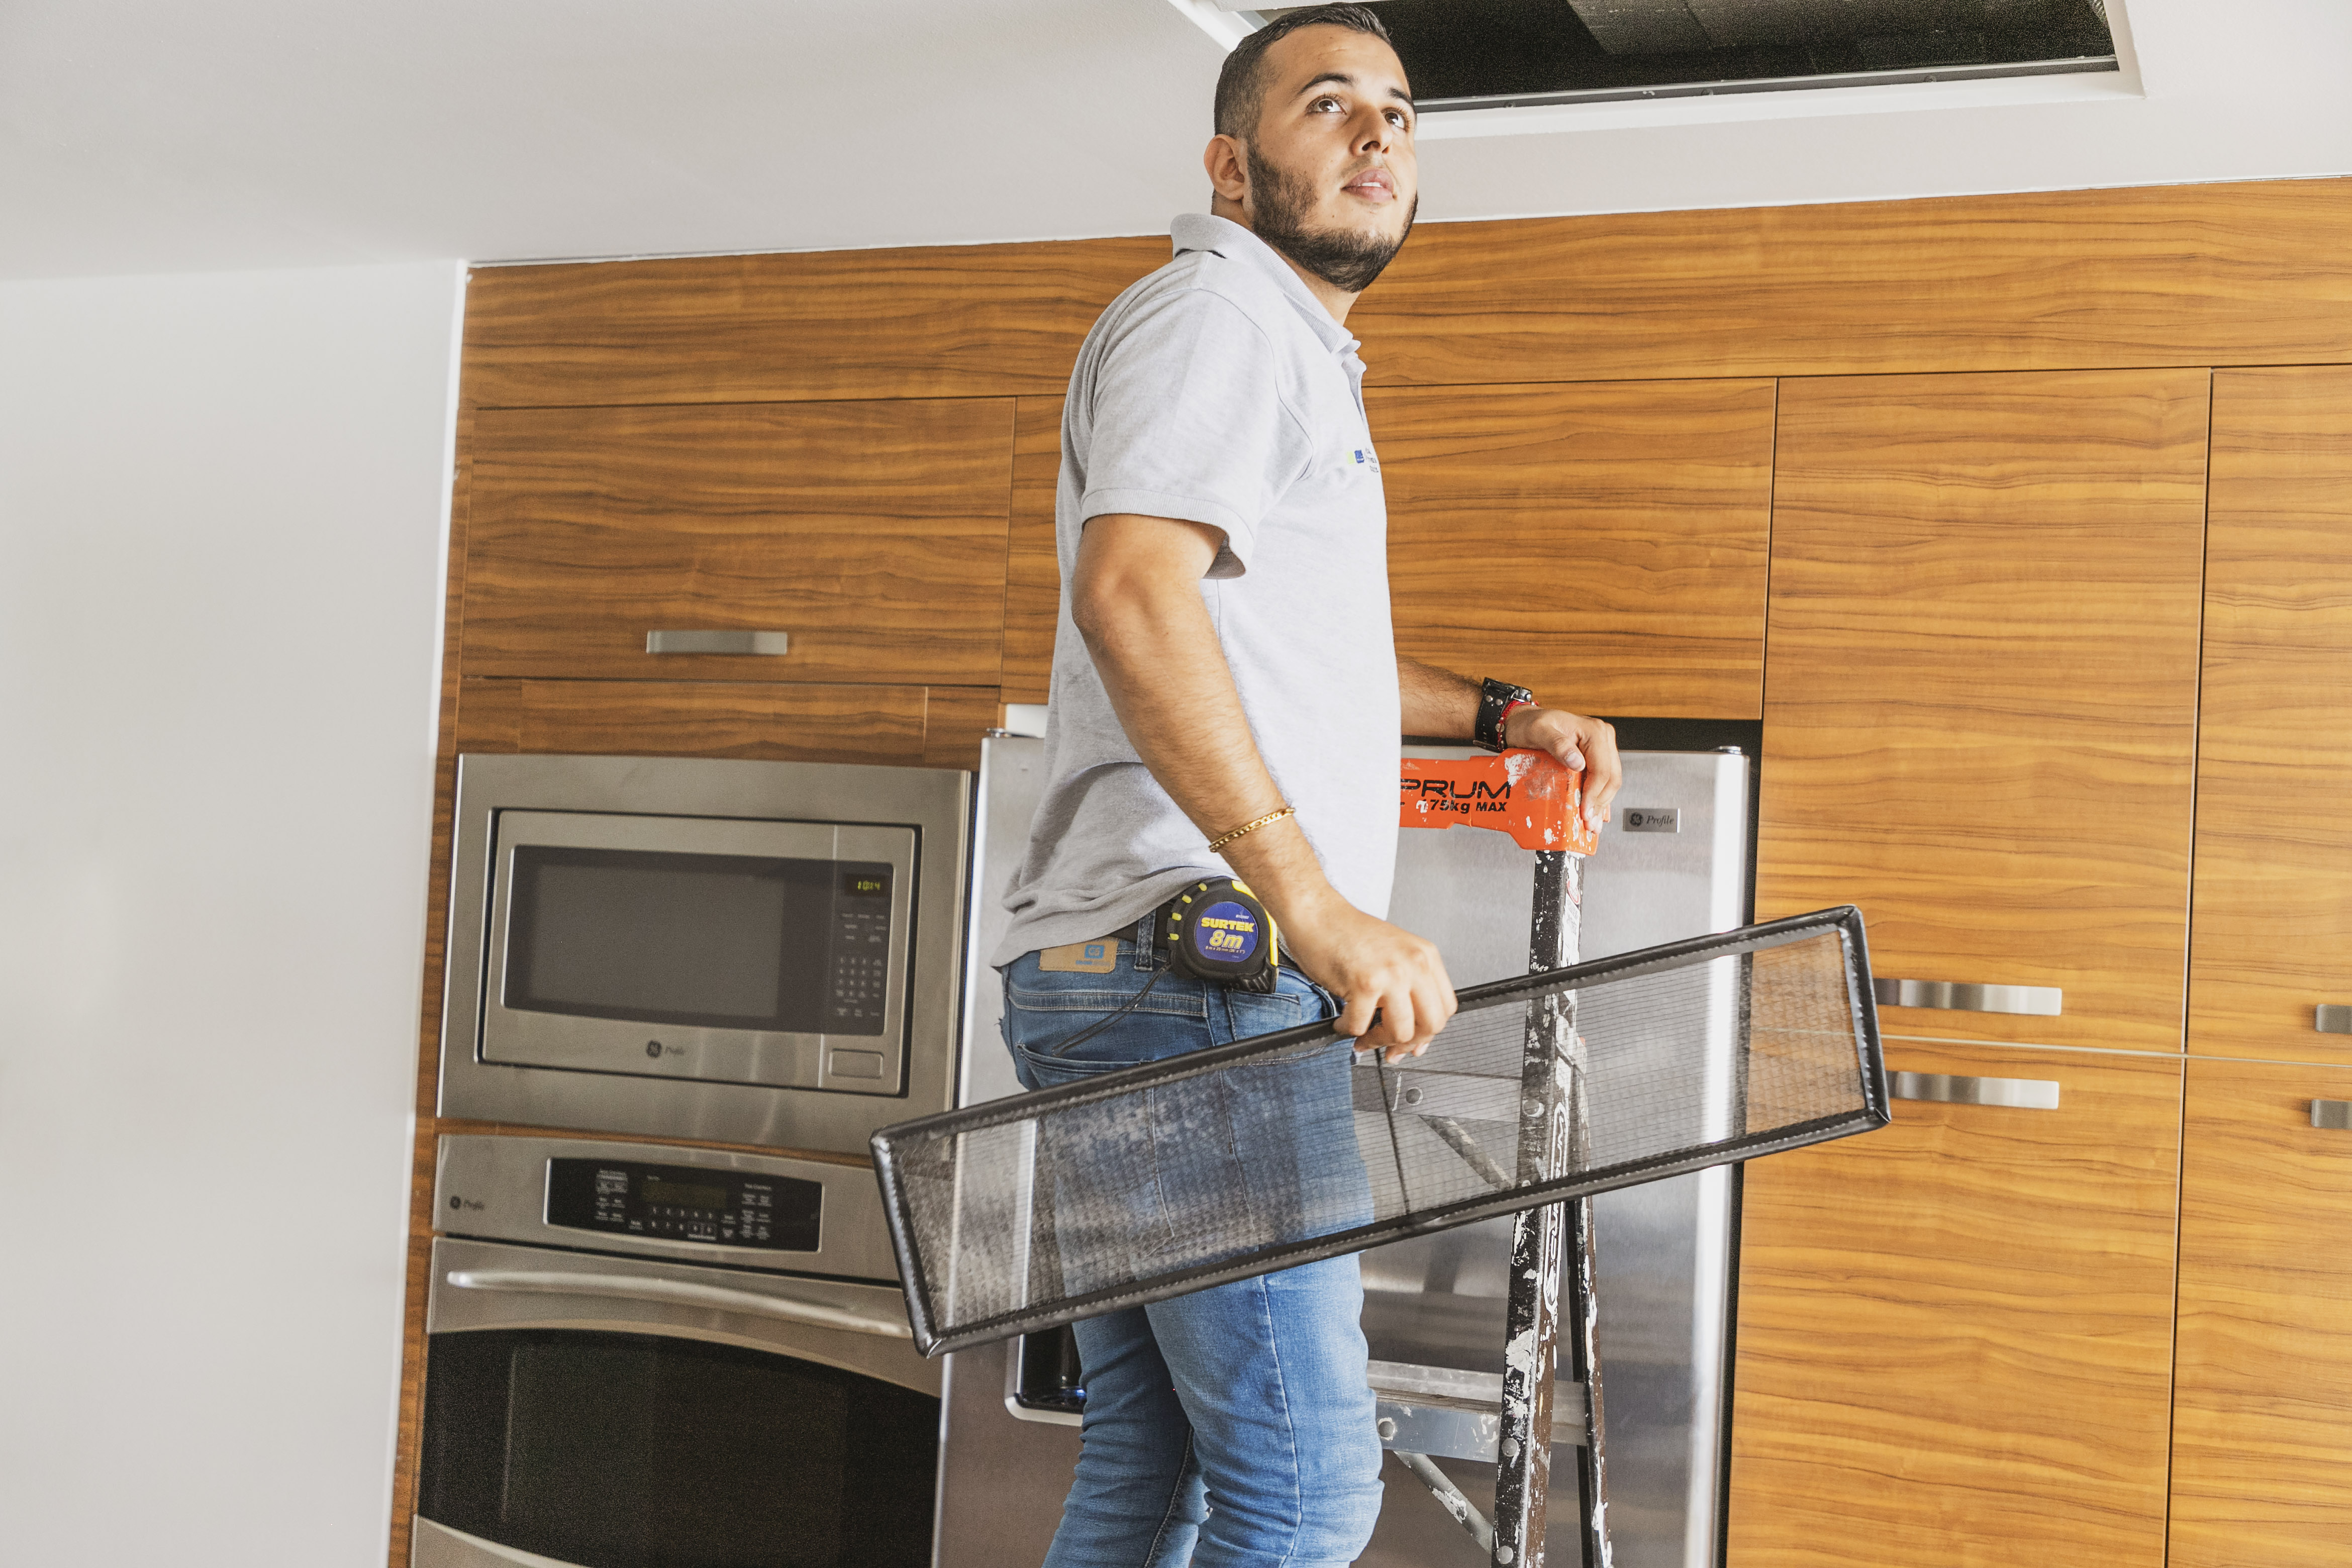 Commercial Premises: Maintenance and Care